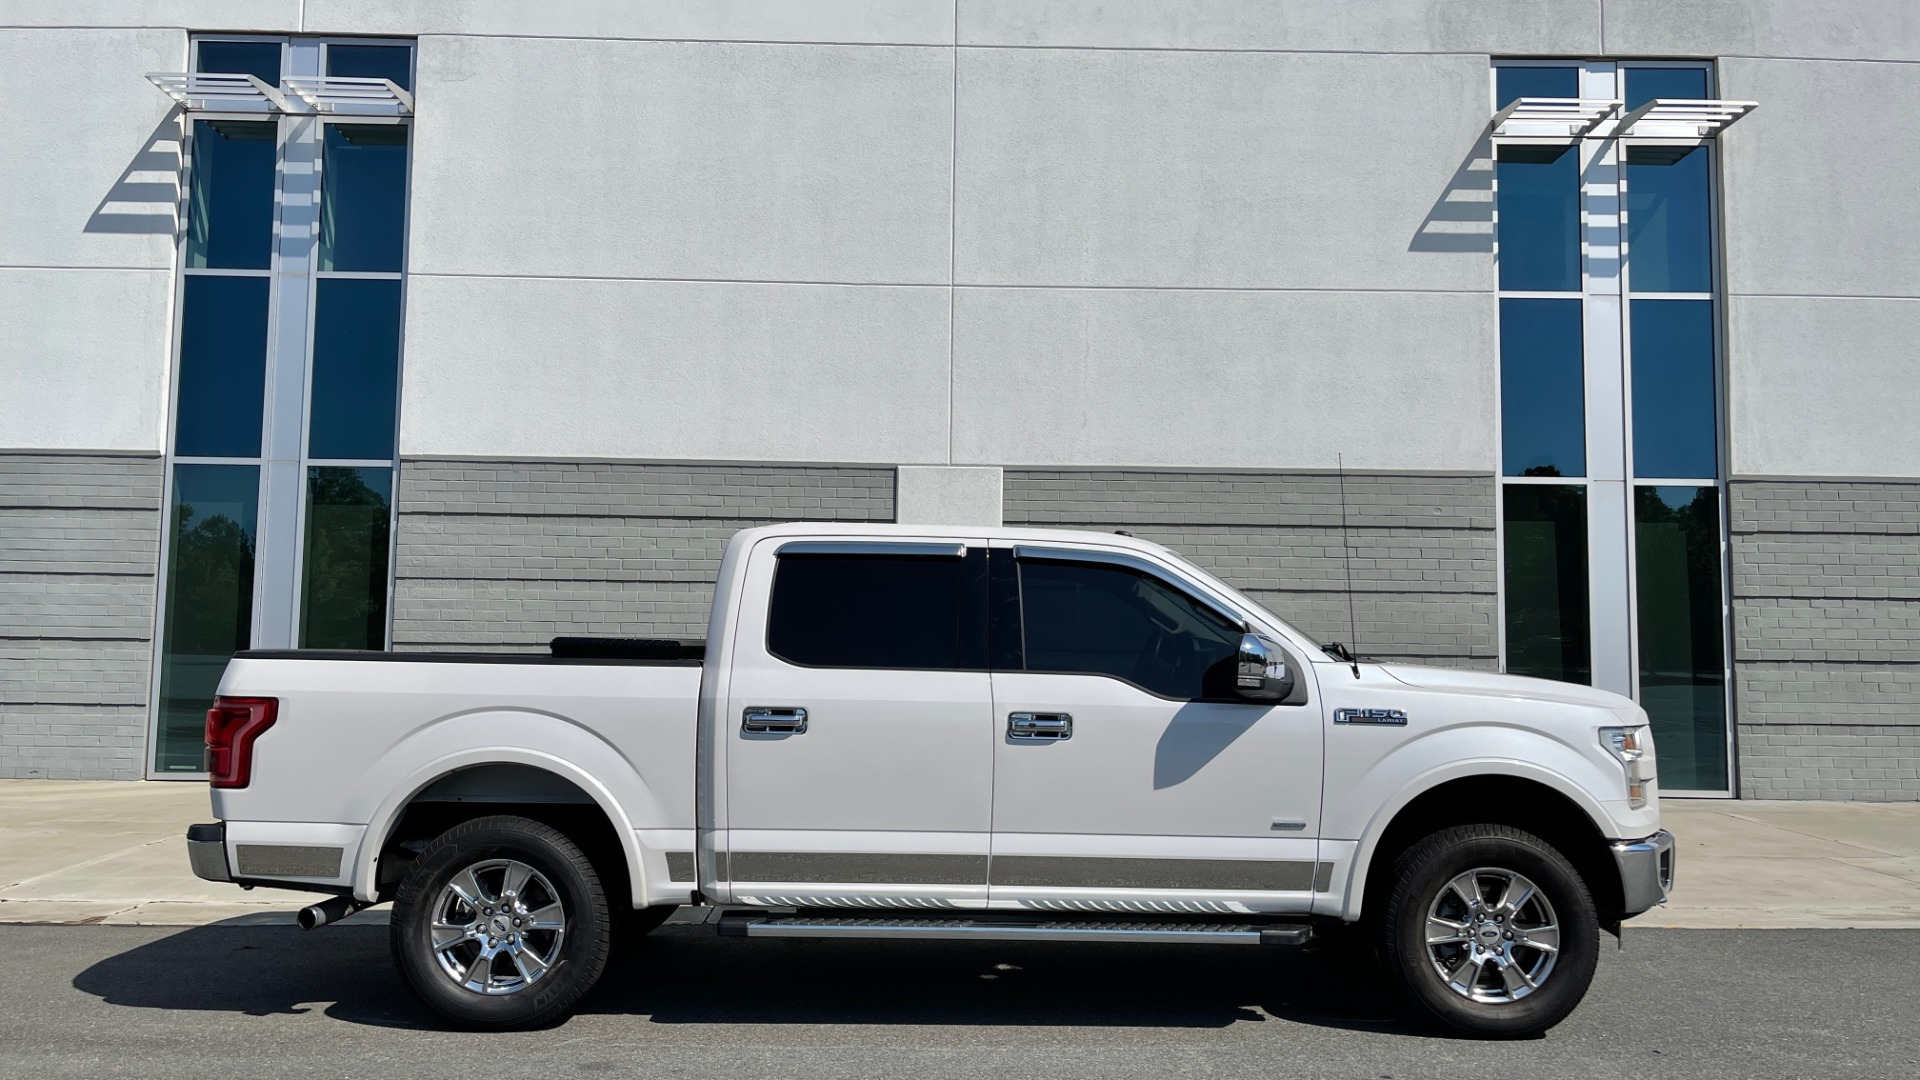 Used 2016 Ford F-150 LARIAT 4X4 / 3.5L V6 / 6-SPD AUTO / BLIS / SONY / NAV / REARVIEW for sale $37,500 at Formula Imports in Charlotte NC 28227 8